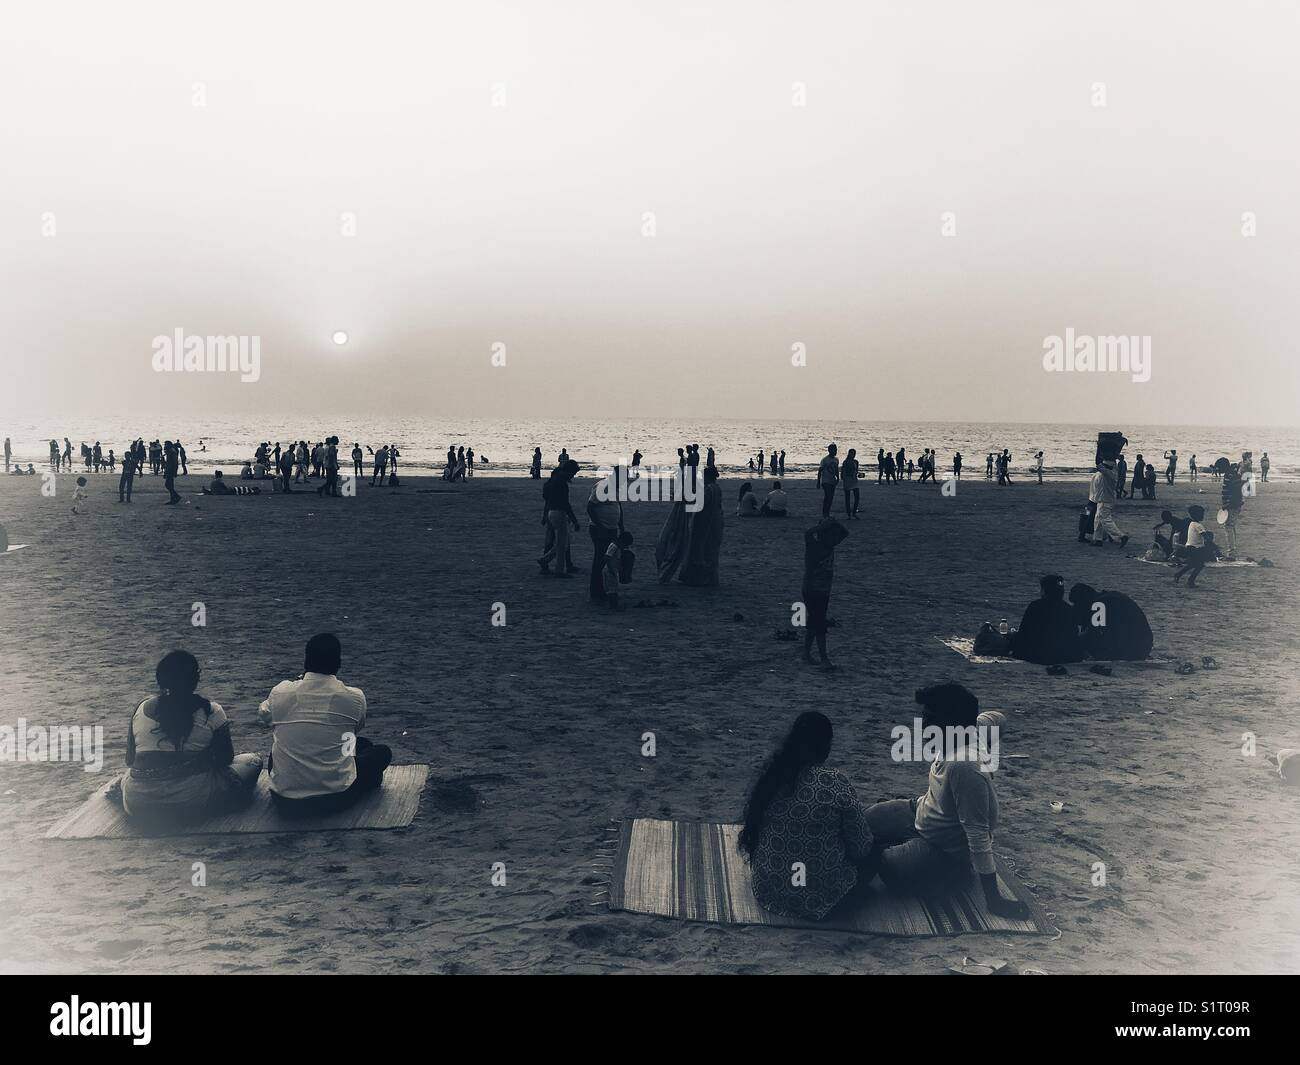 Families sits and have gala time on Juhu Beach of Mumbai. - Stock Image